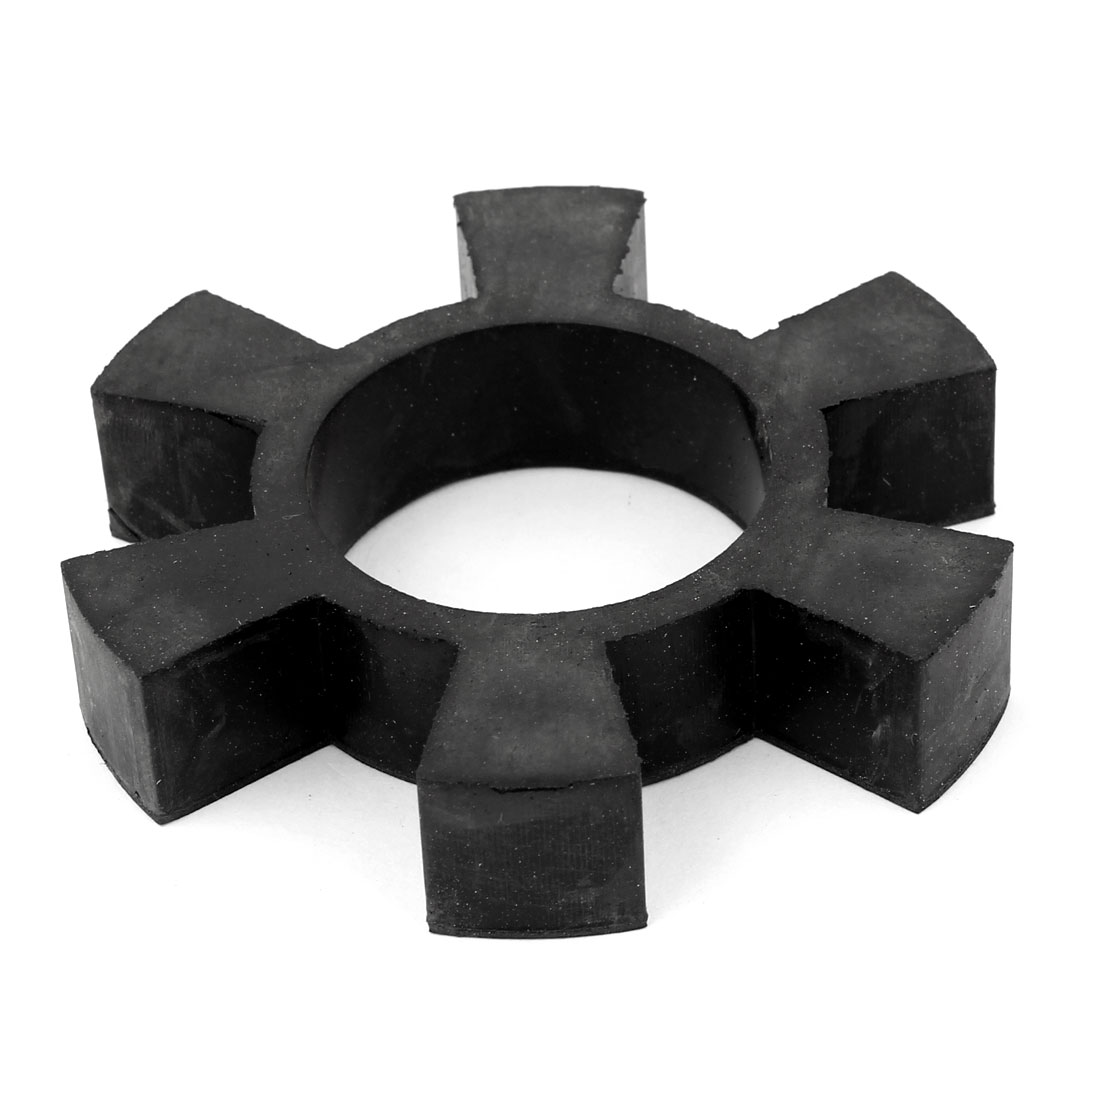 "3.7"" 6 Petal Rubber Drive Shaft Coupling Insert Spider Cushion Black"